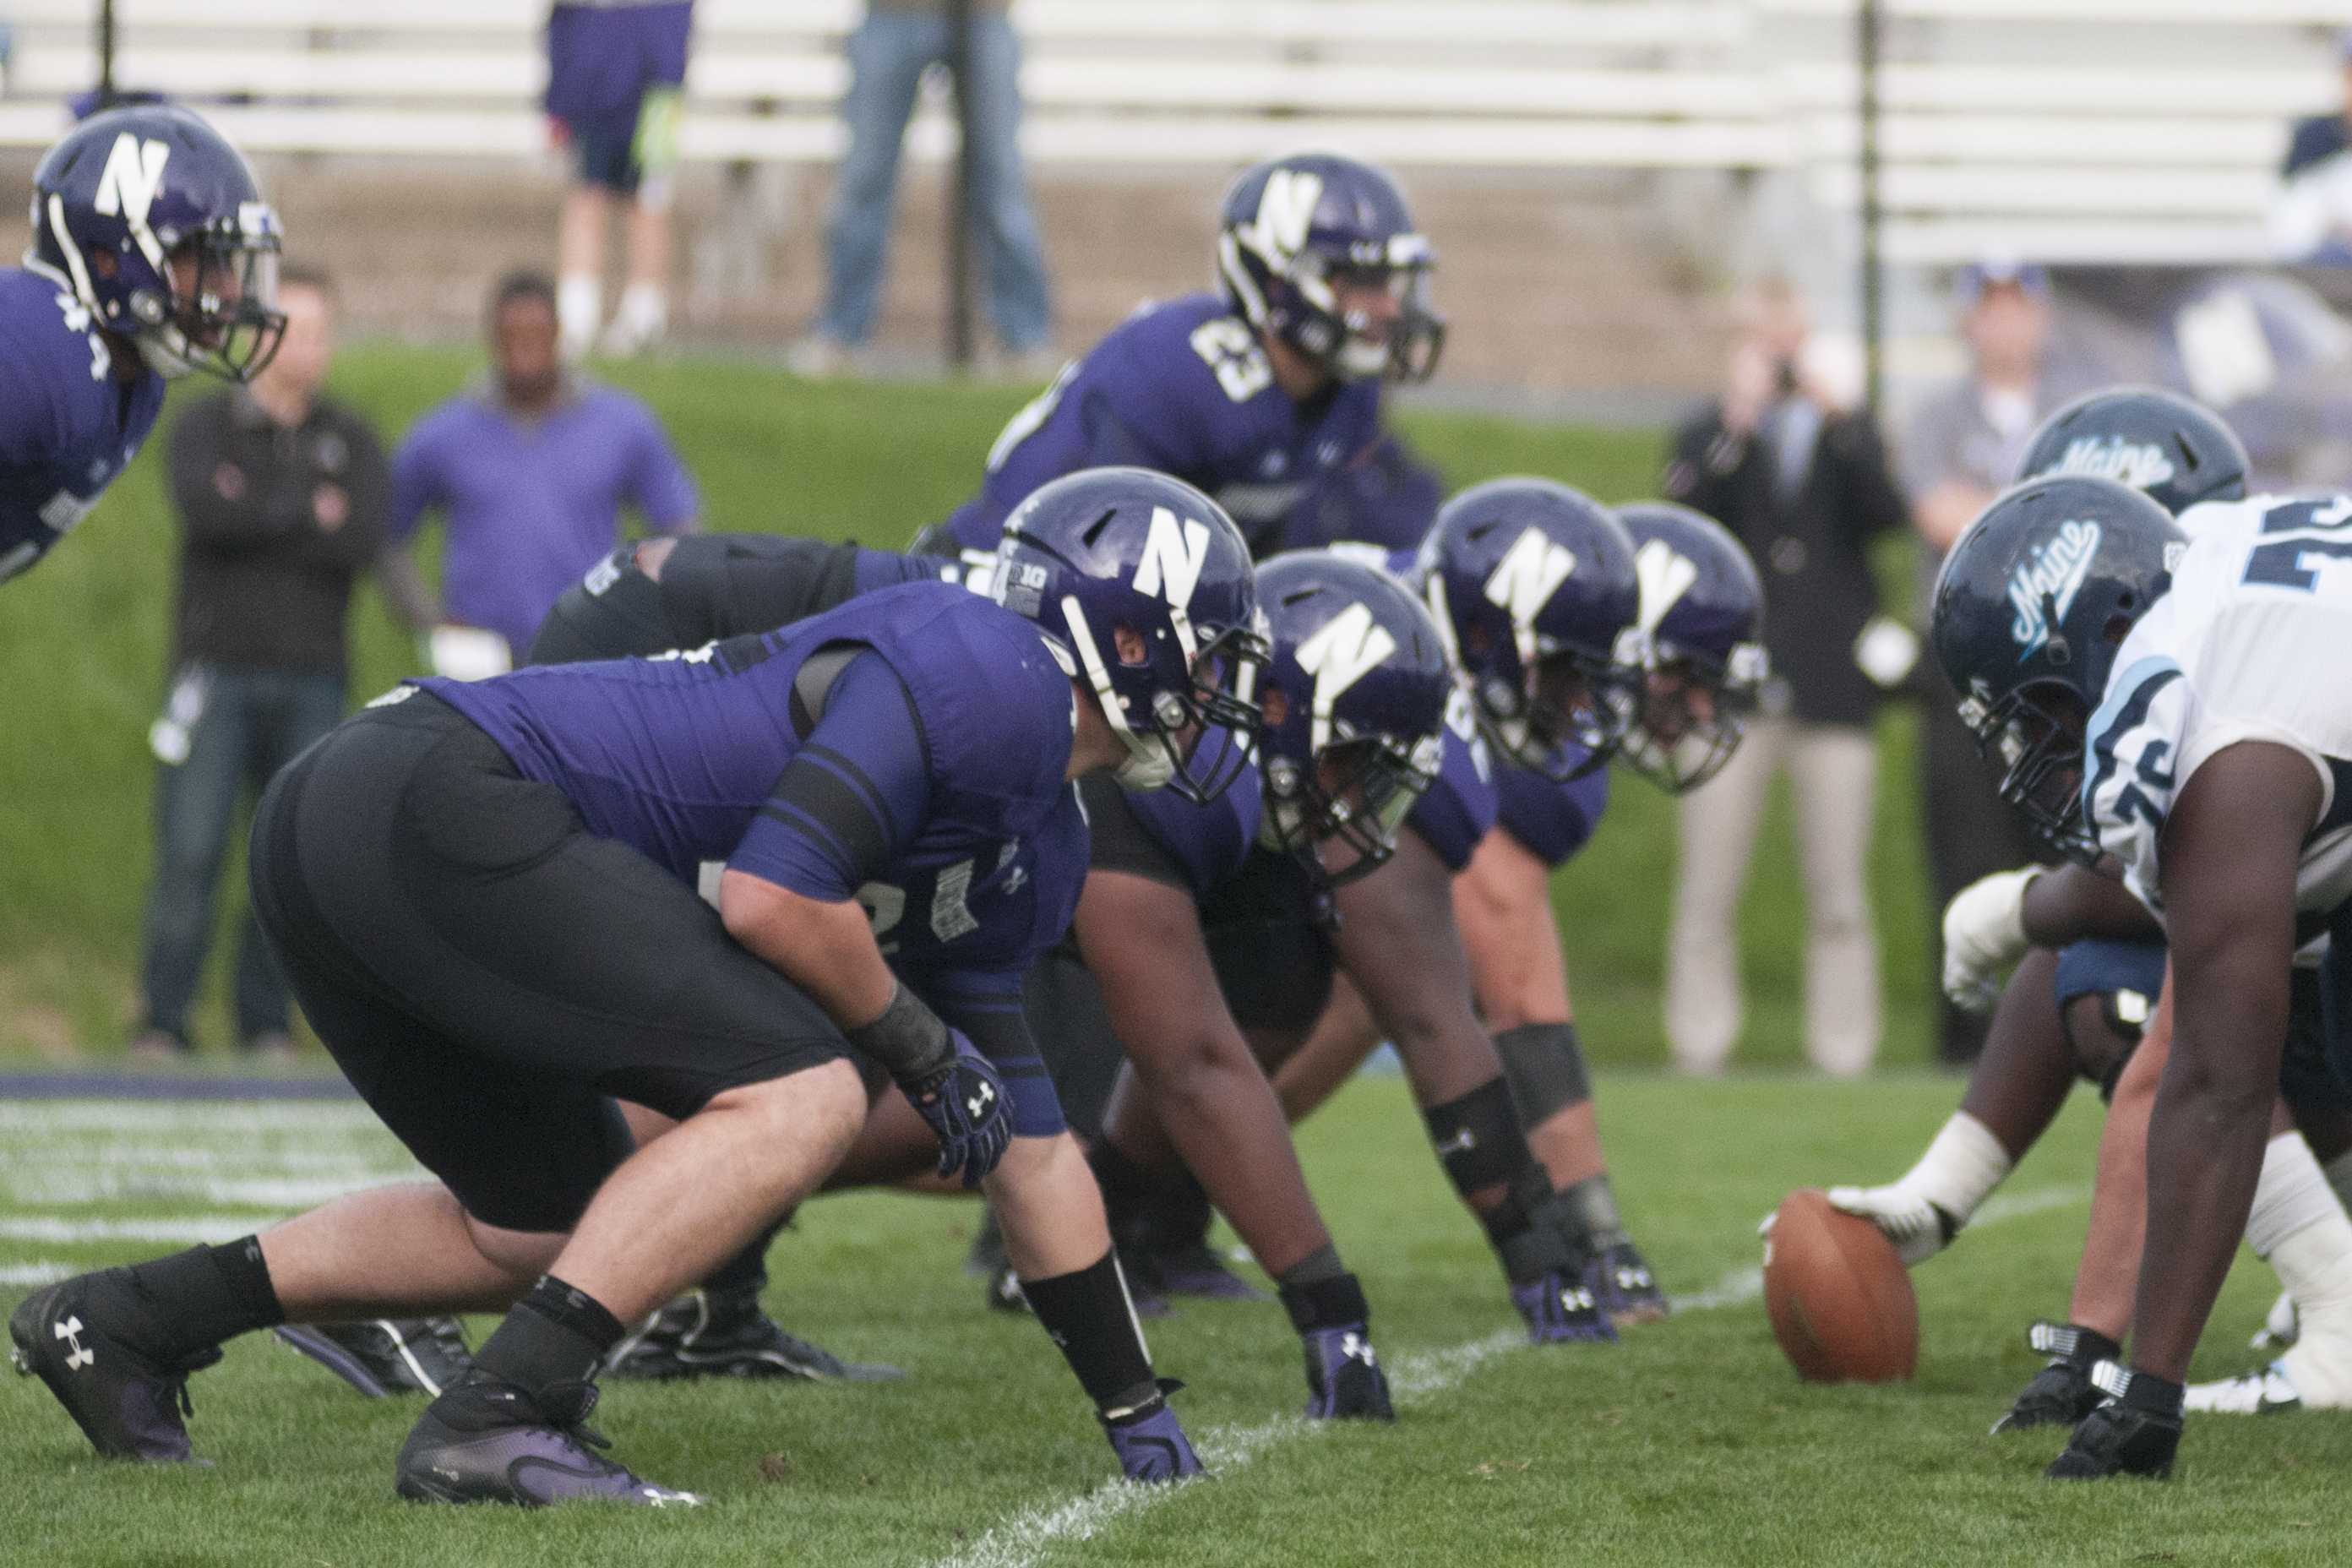 The Northwestern defensive line digs in during the team's game against Maine. The Wildcats' line will be key in slowing down Wisconsin's rushing attack Saturday.